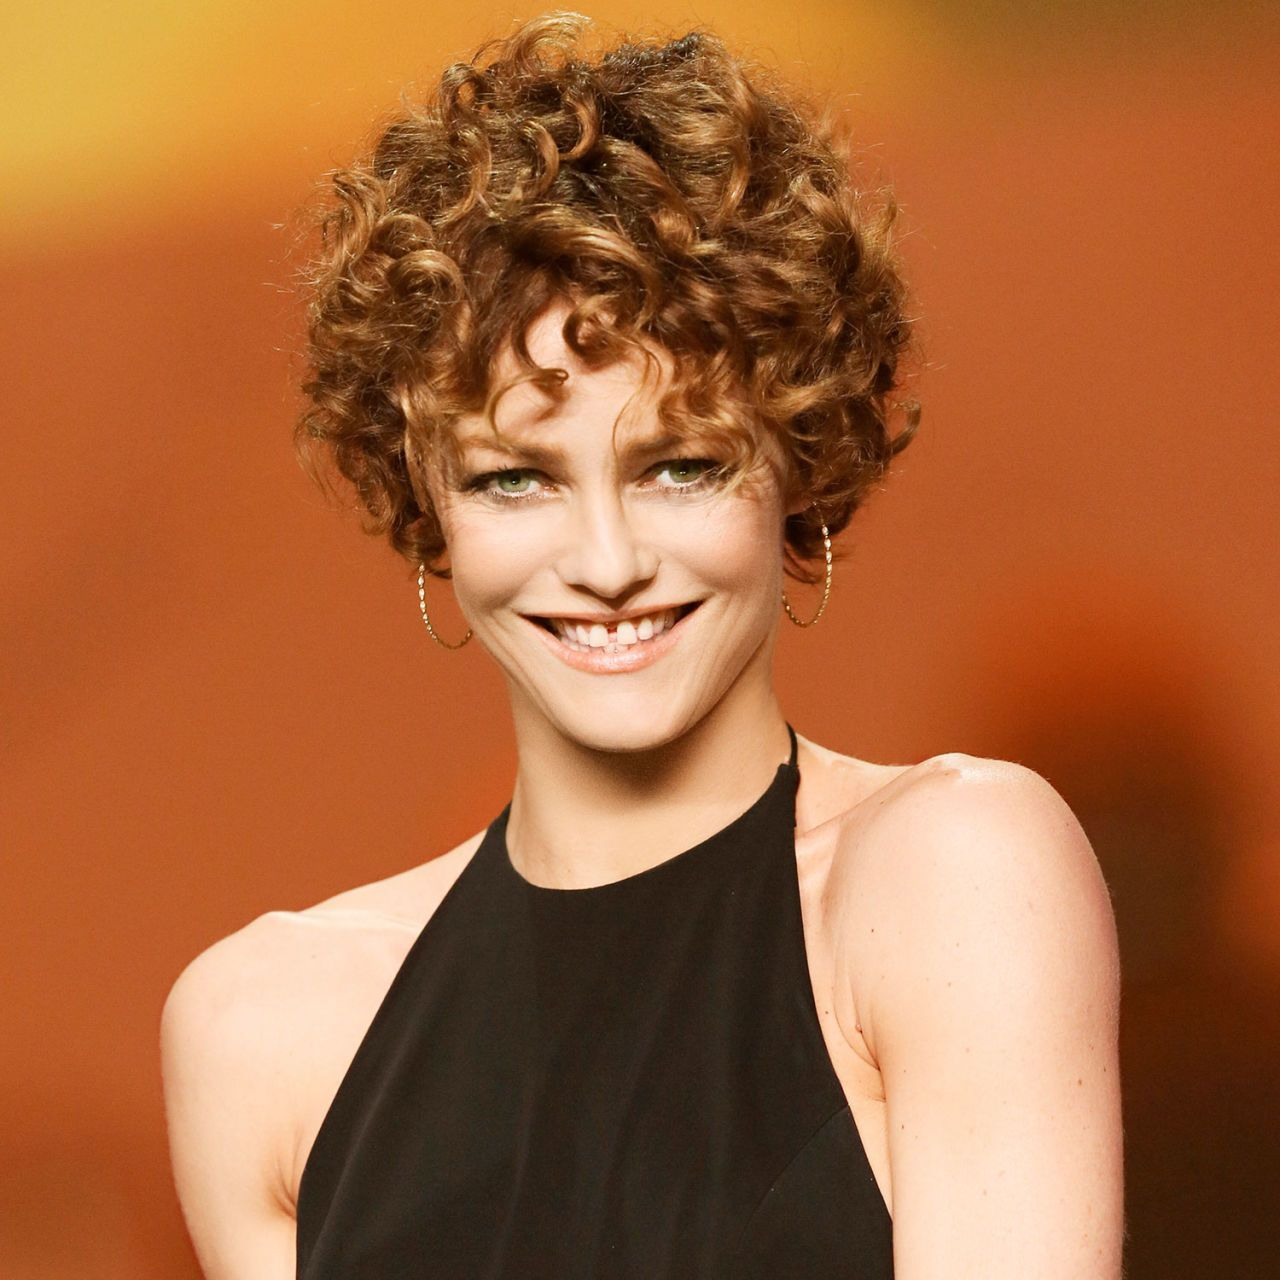 Older Women Embrace the New Short Hair Curly pixie